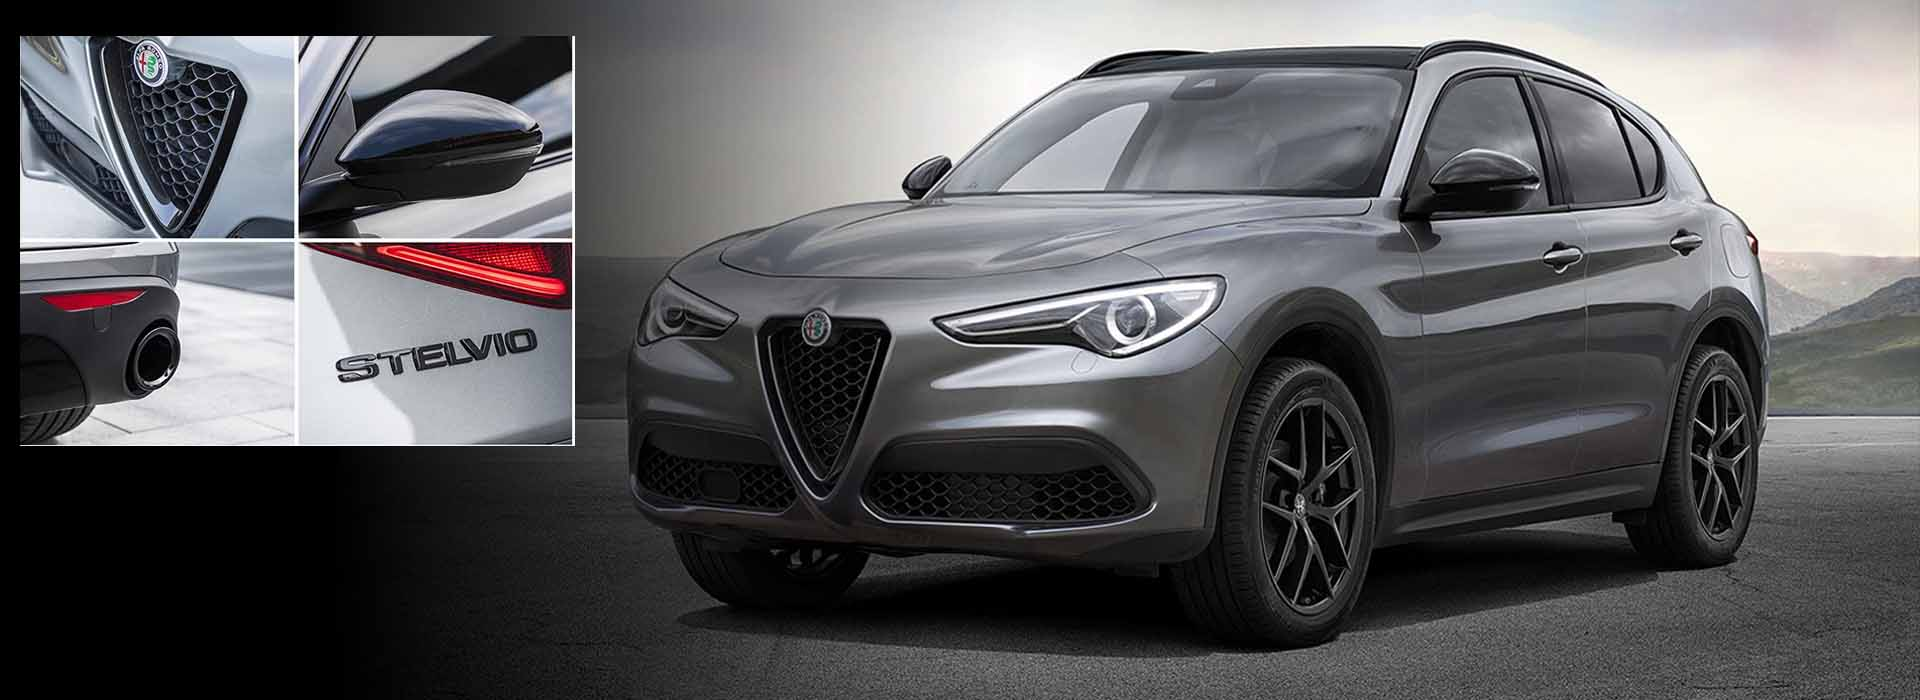 alfa romeo stelvio black pack la squadra veloce fiat alfa romeo montpellier. Black Bedroom Furniture Sets. Home Design Ideas